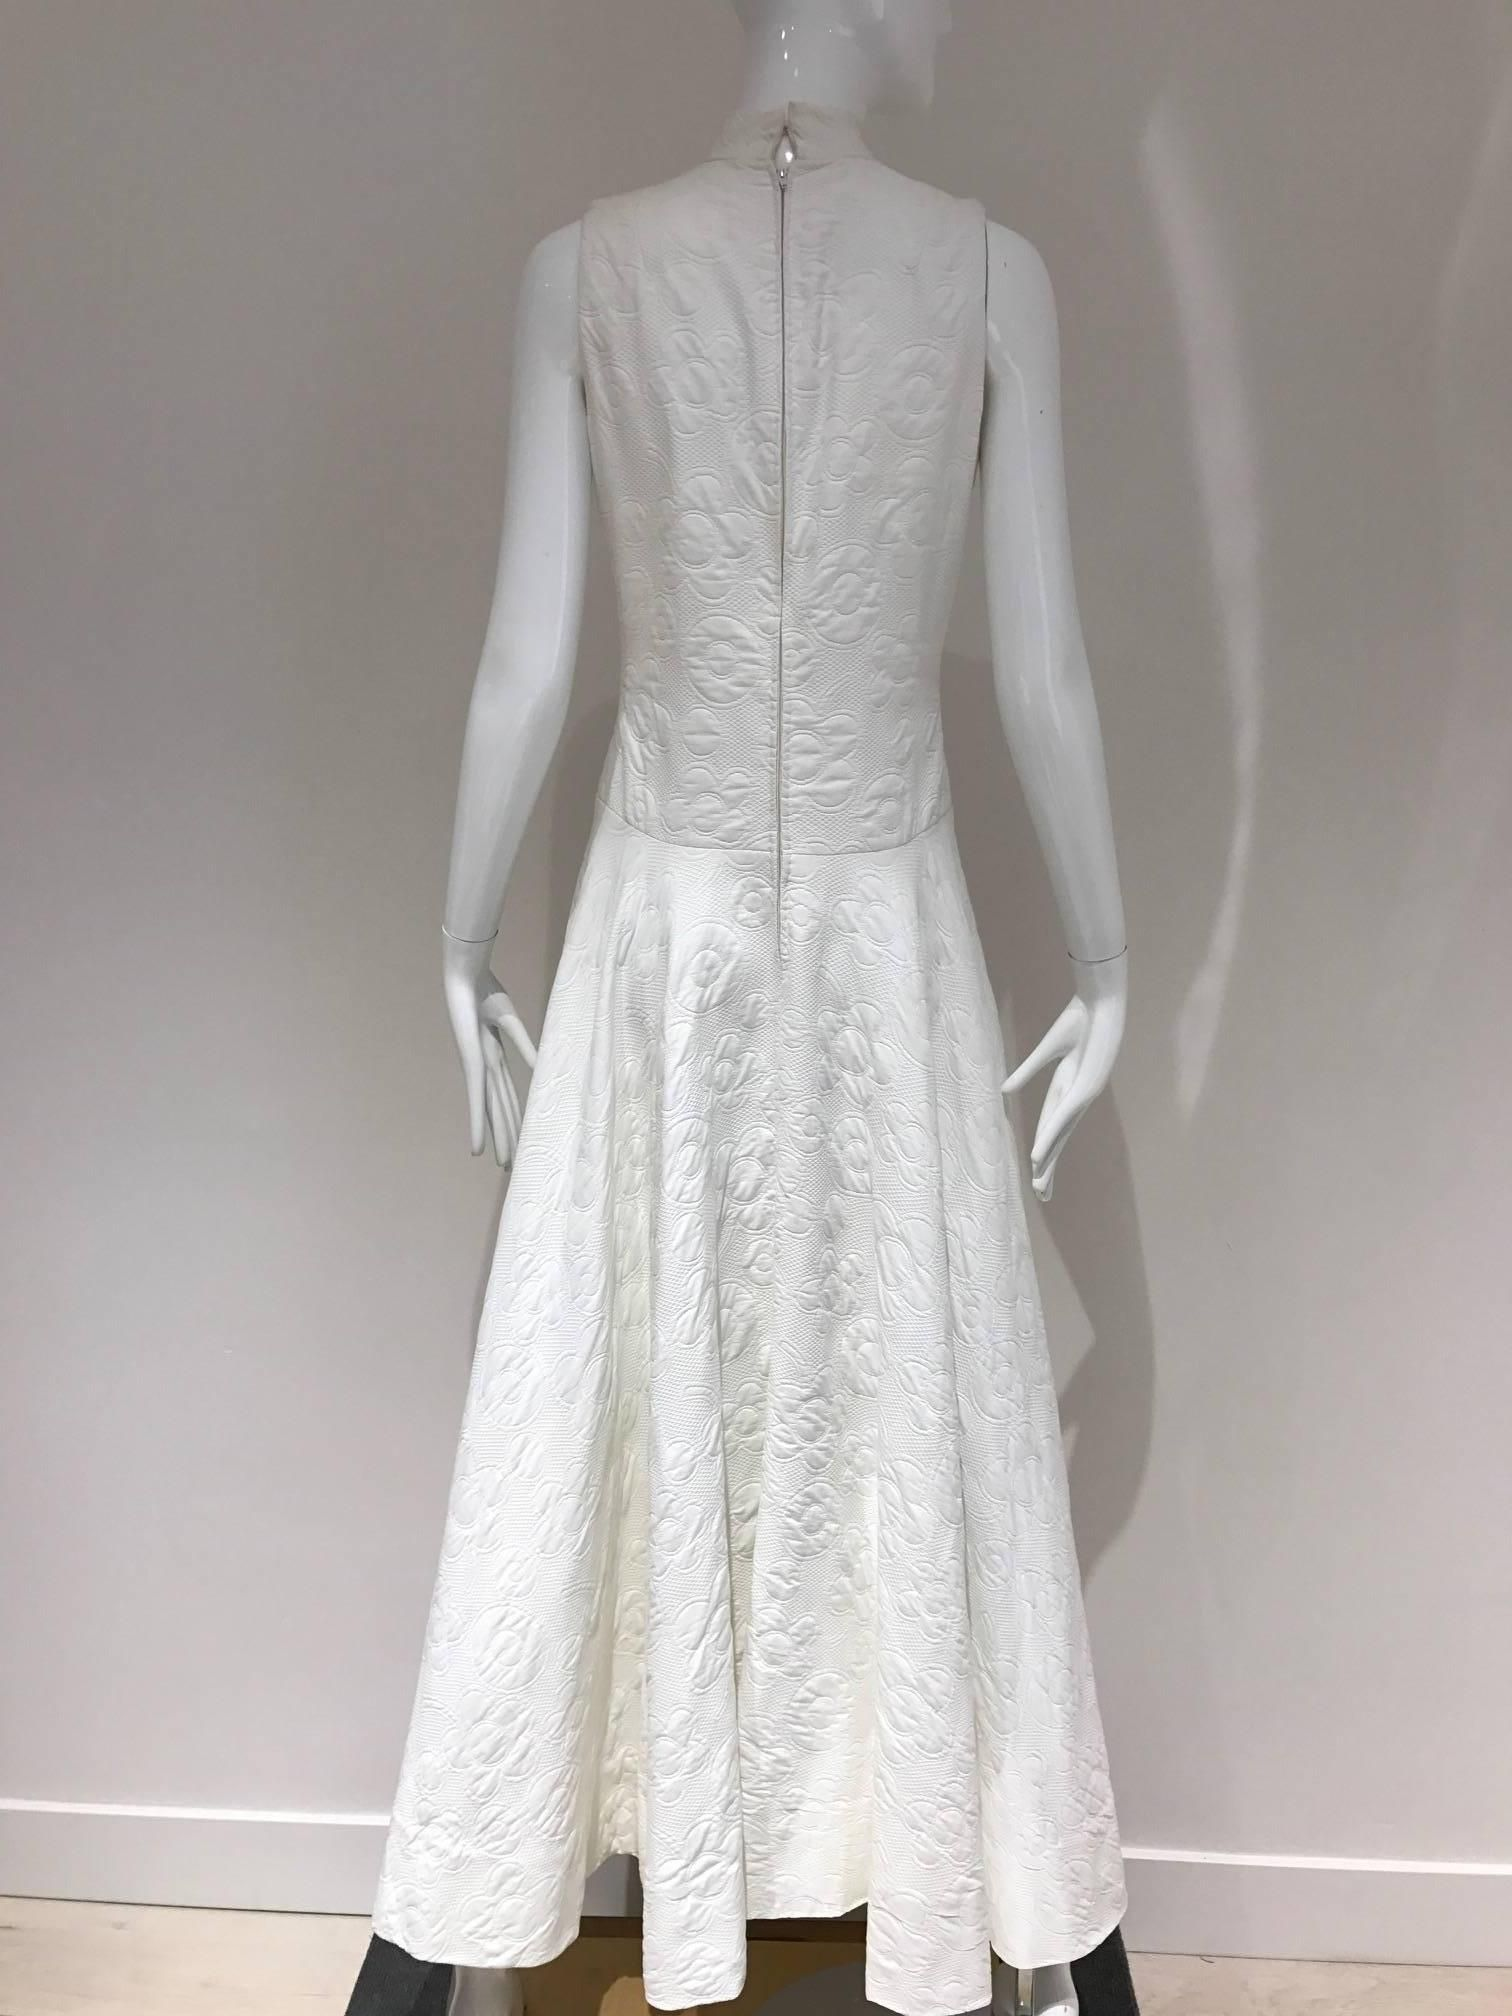 1970s Geoffrey Beene white cotton pique maxi dress (With